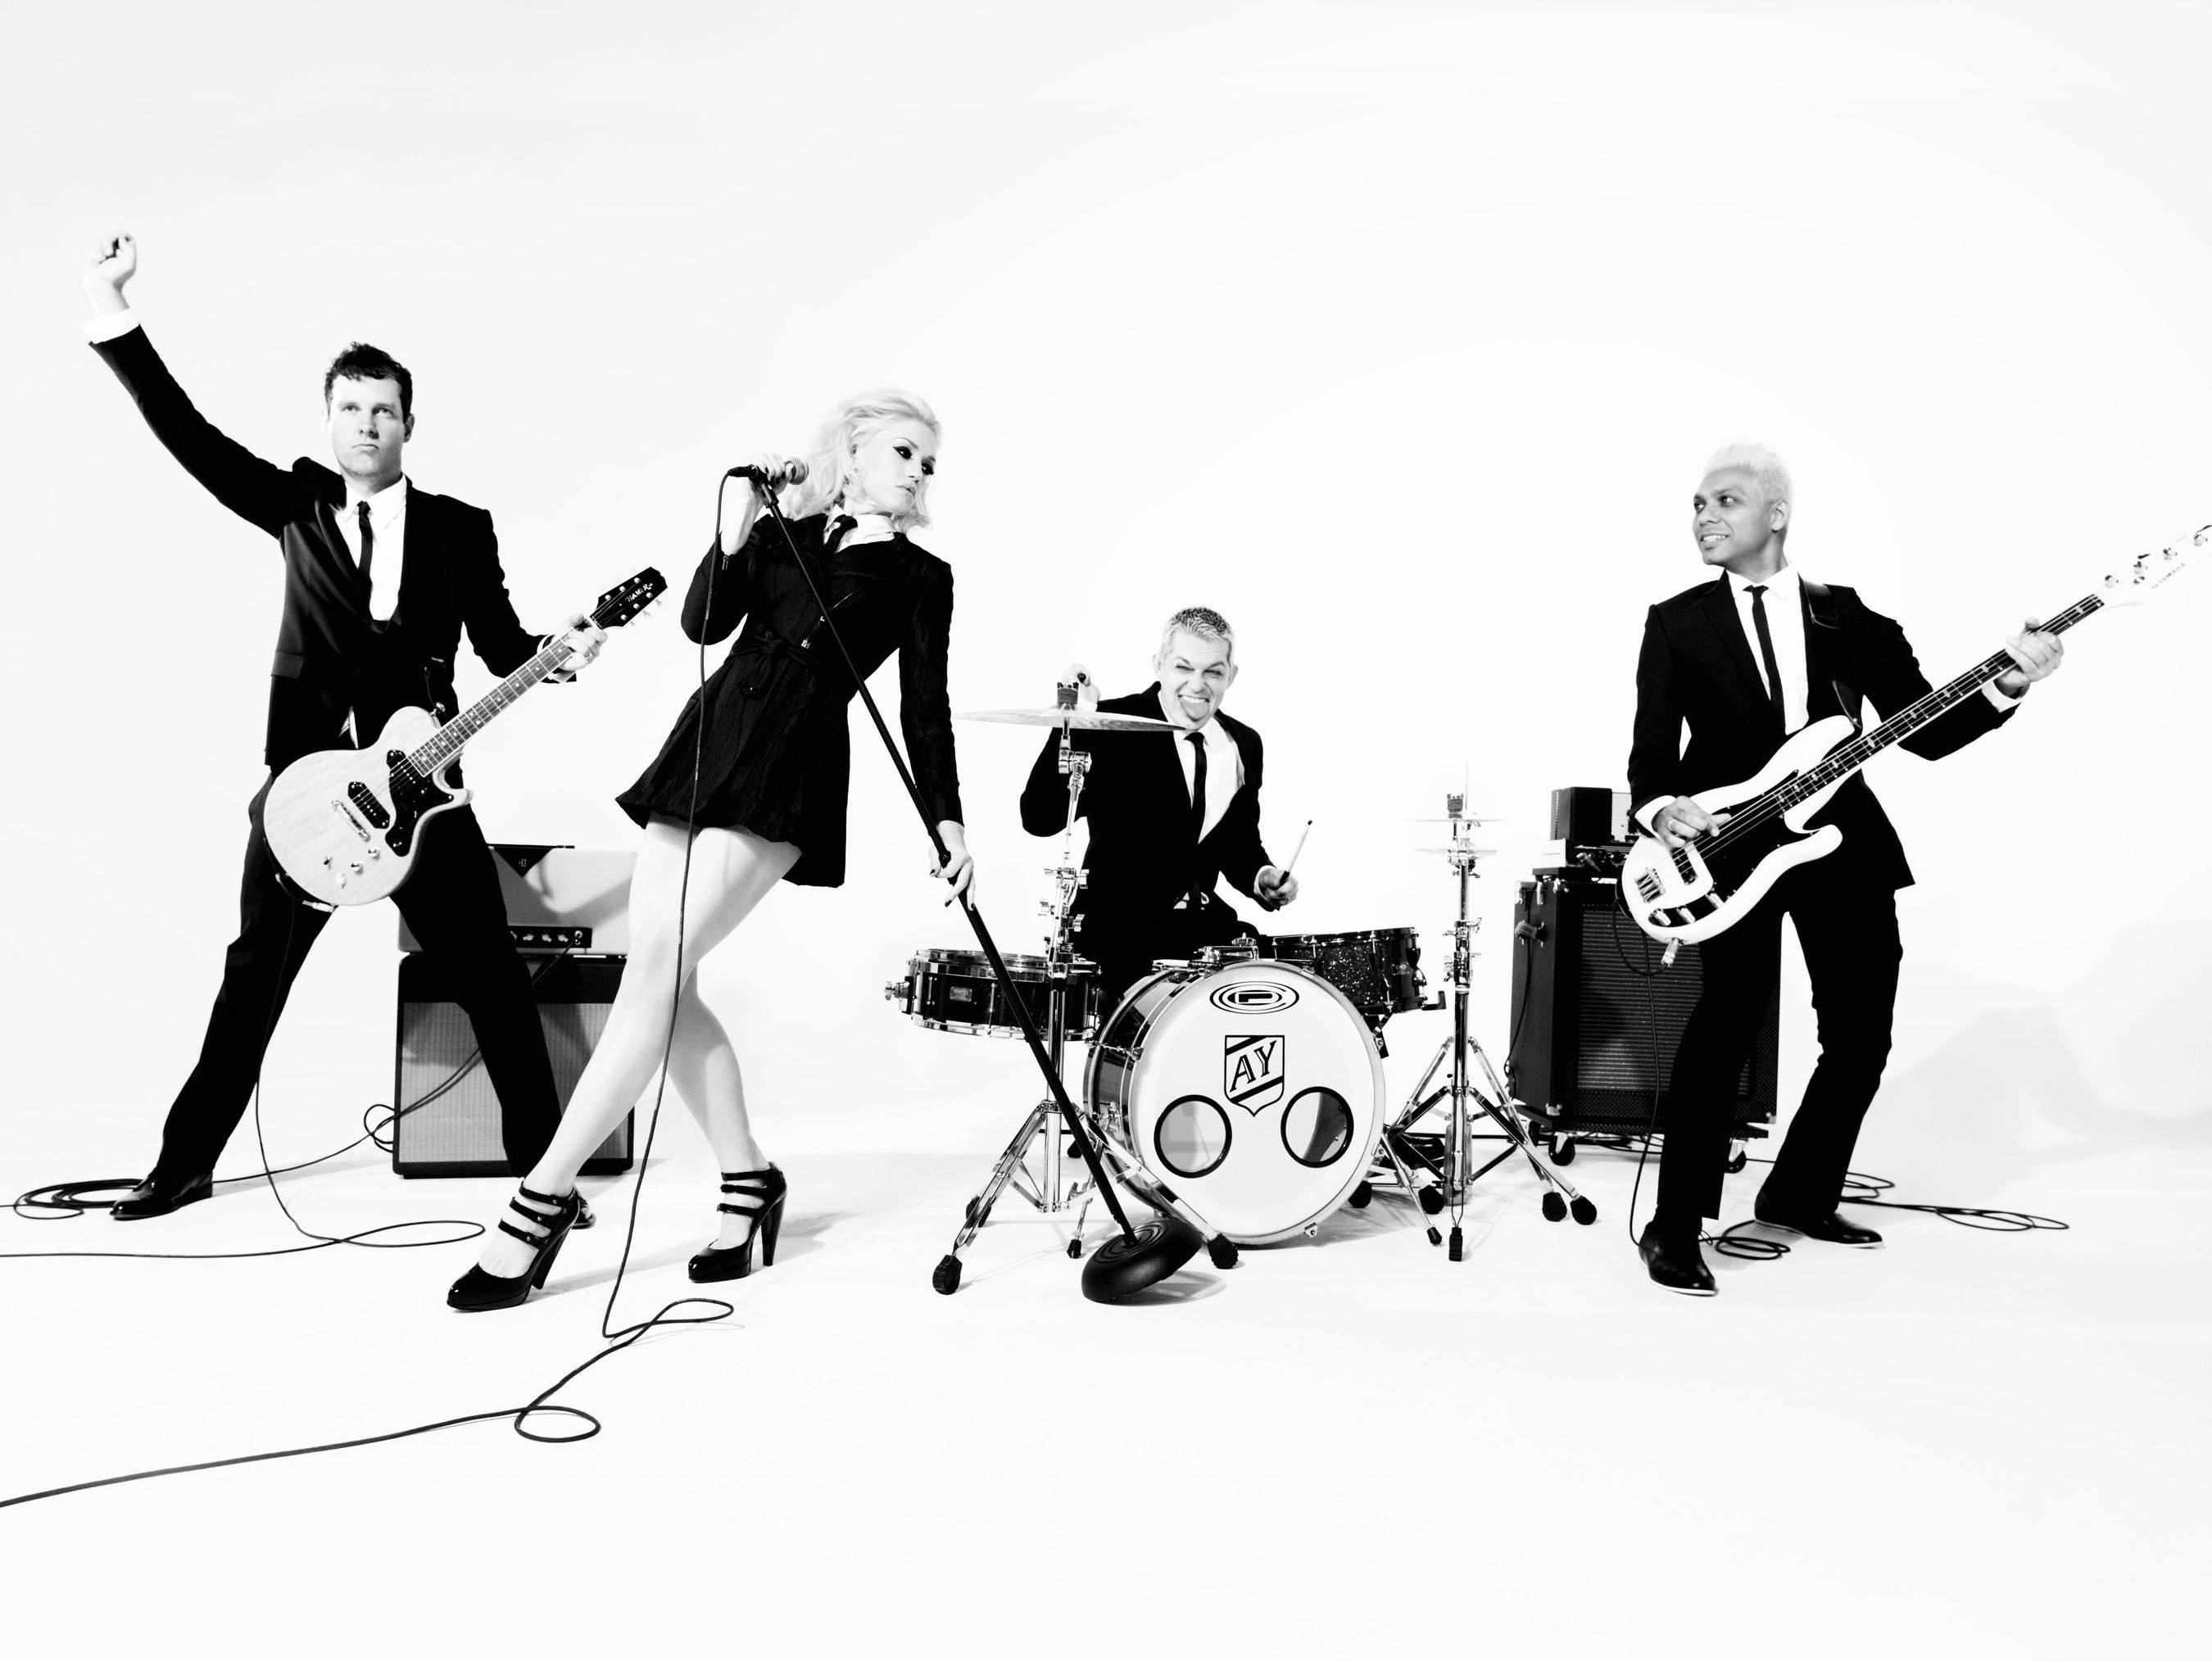 [mp3] No Doubt - Settle Down